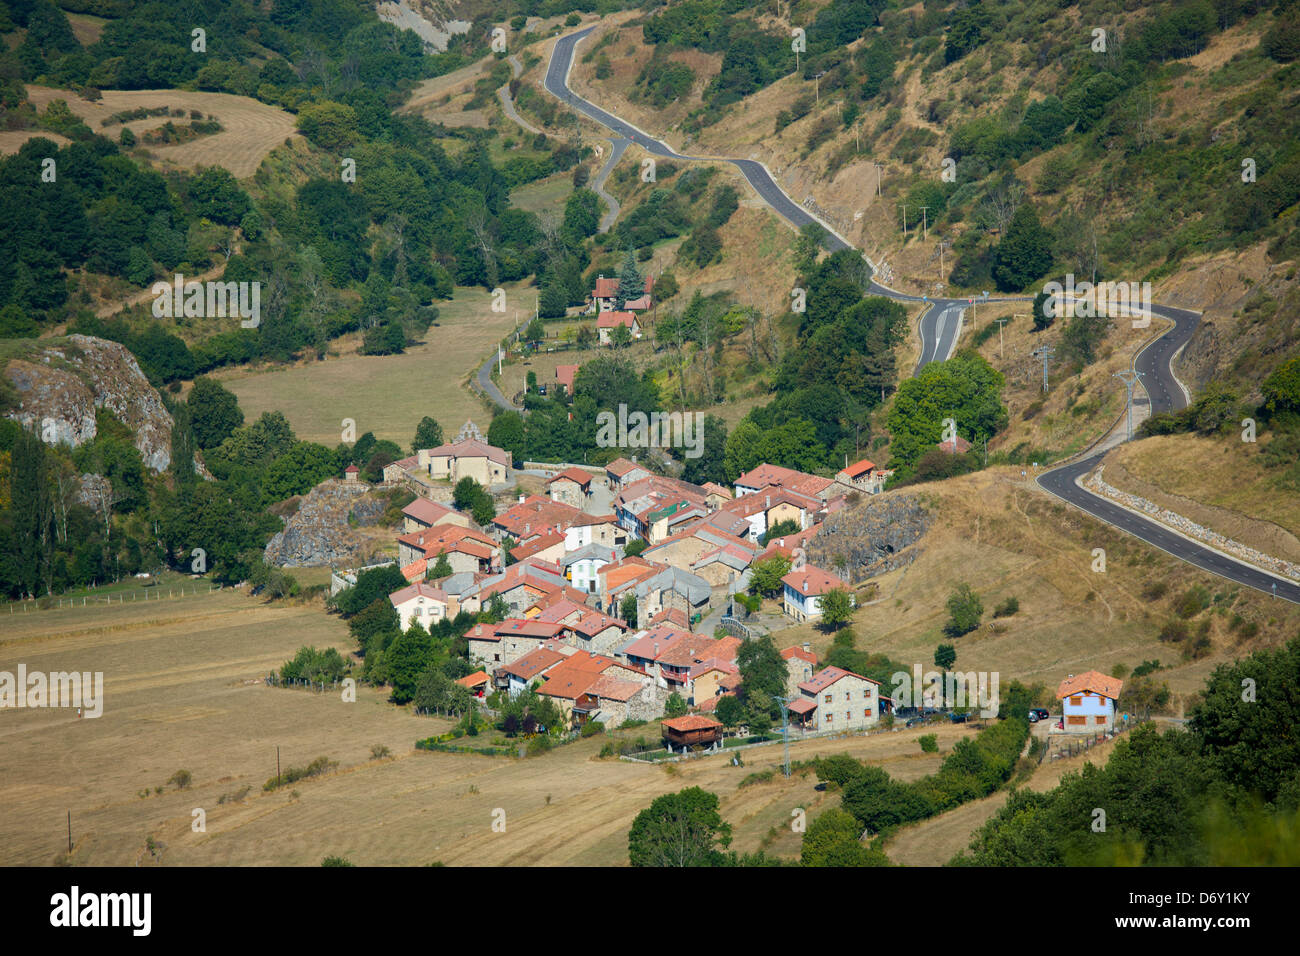 Mountain village in valley Santa Marina de Valdeon in Picos de Europa, Northern Spain - Stock Image